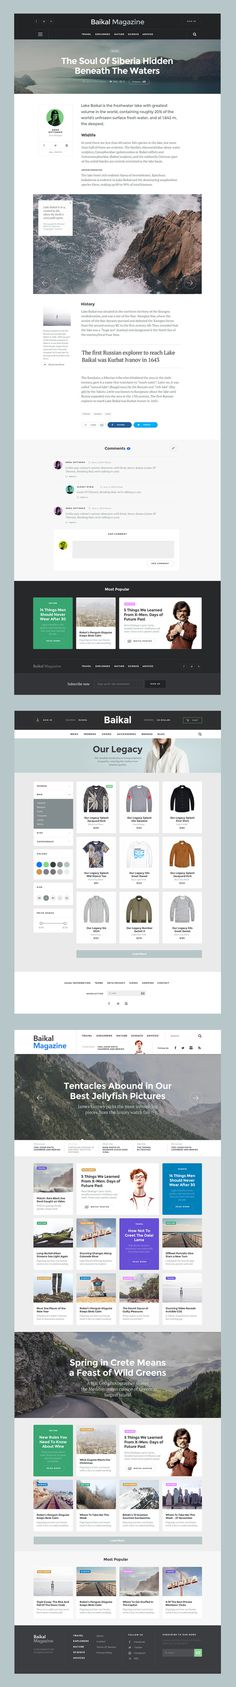 Baikal_preview_samples #web